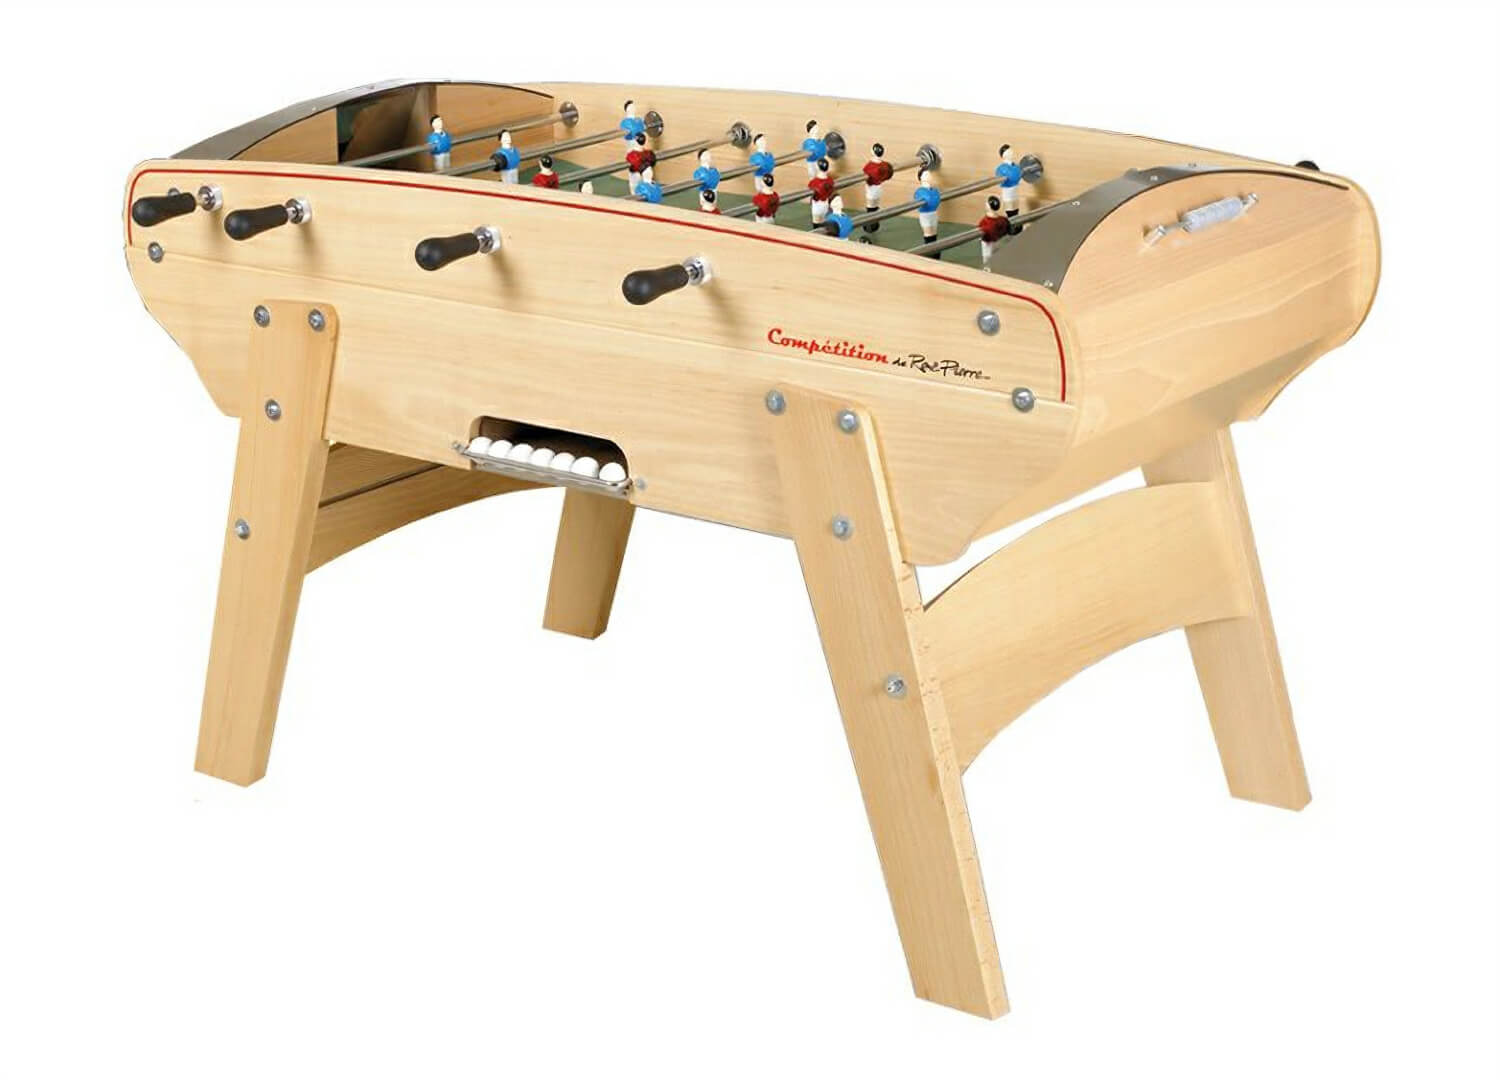 rene pierre competition football table liberty games. Black Bedroom Furniture Sets. Home Design Ideas